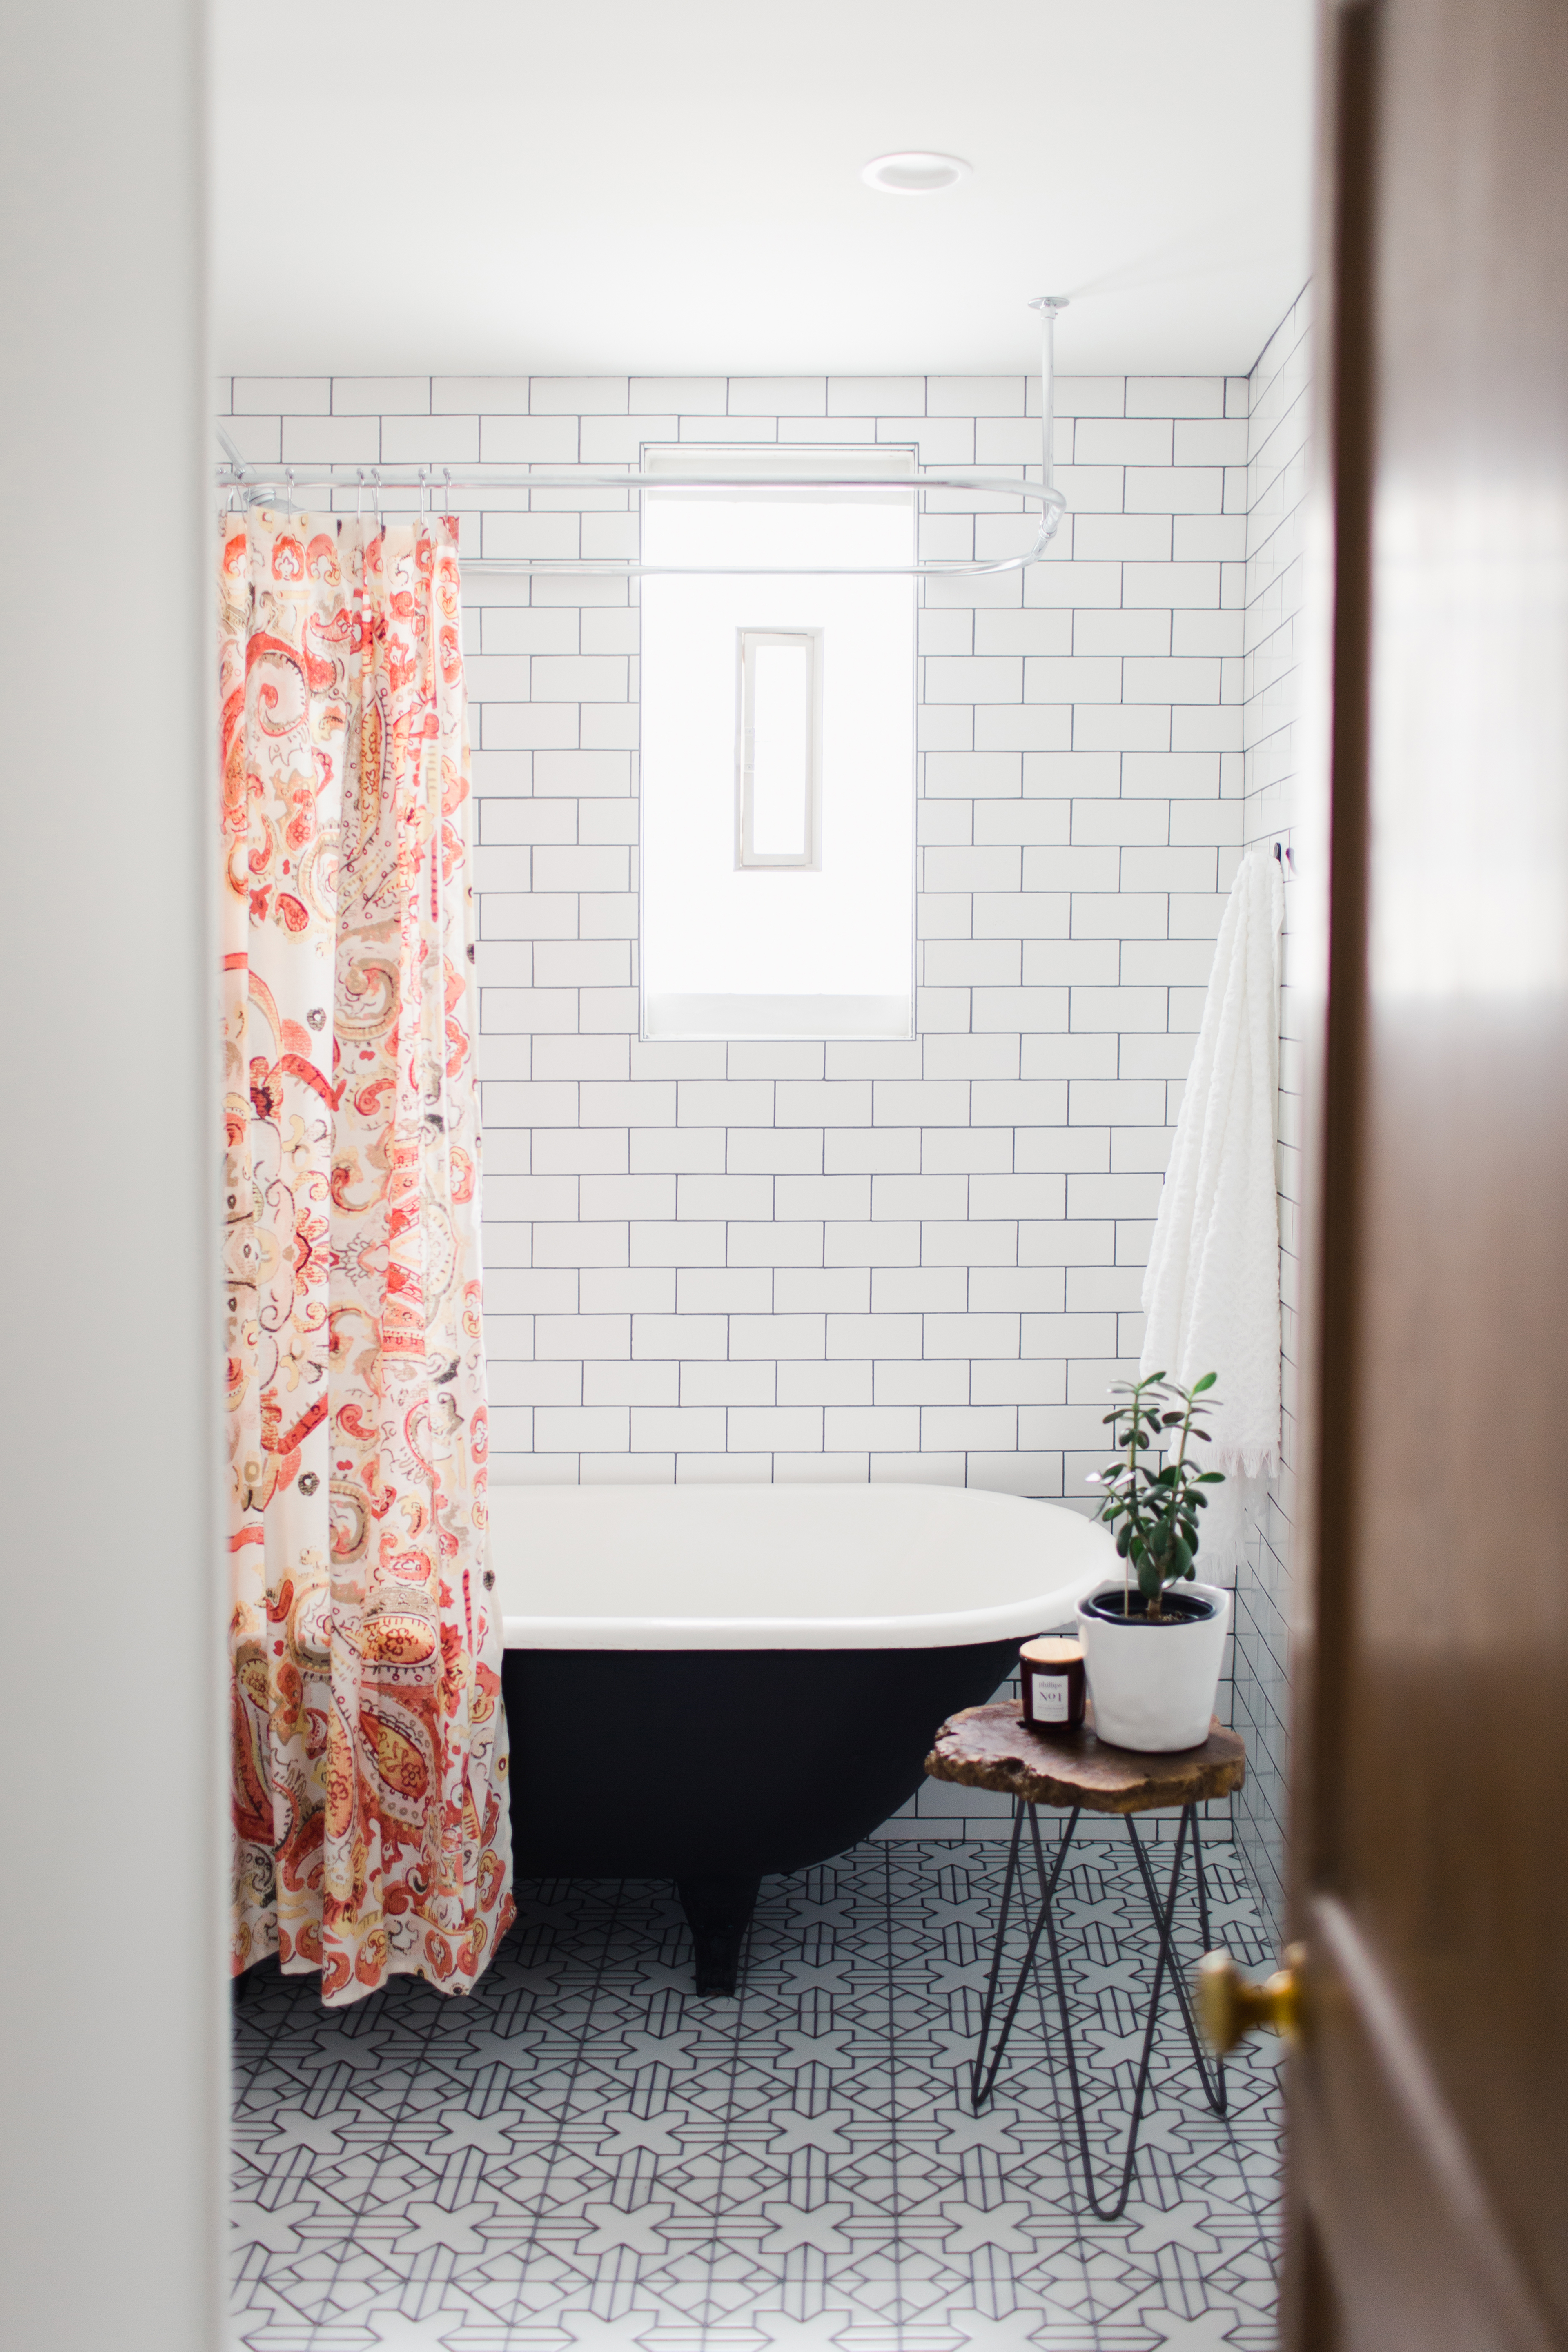 3x6 Subway Tiles in White Wash with Kasbah Trellis in Neutral Motif